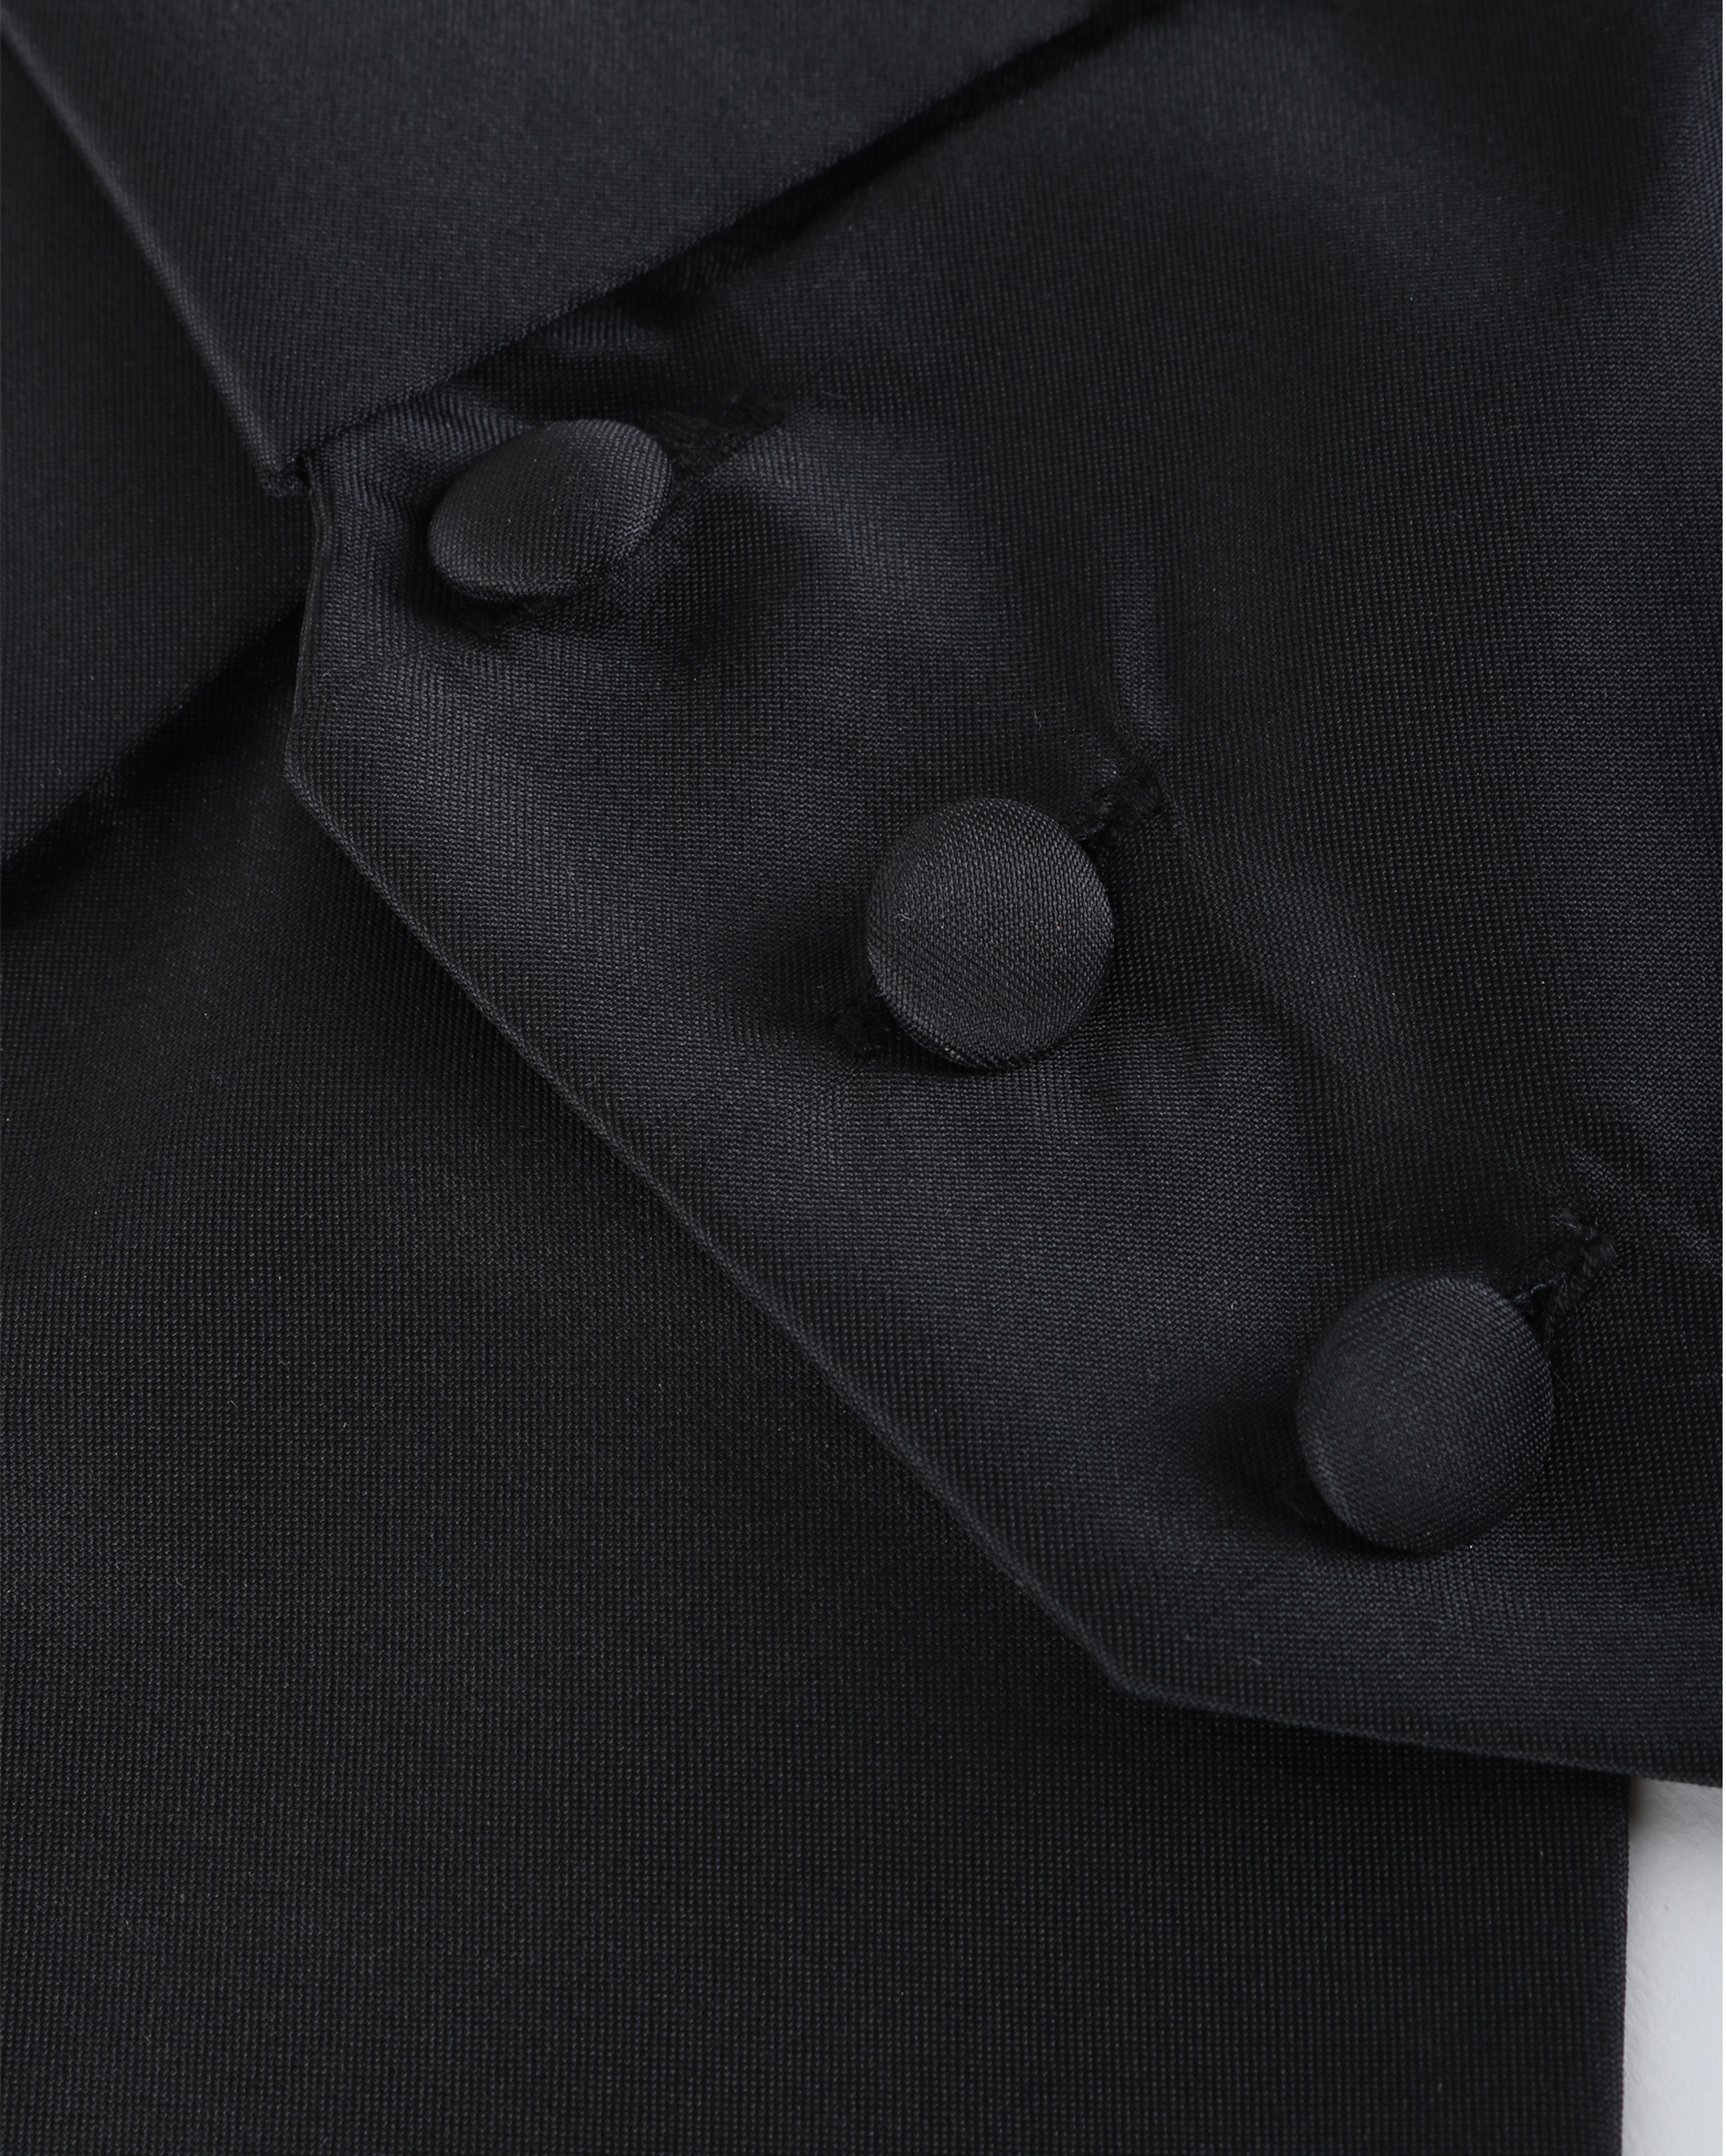 Tailcoat Waistcoat Black photo 1